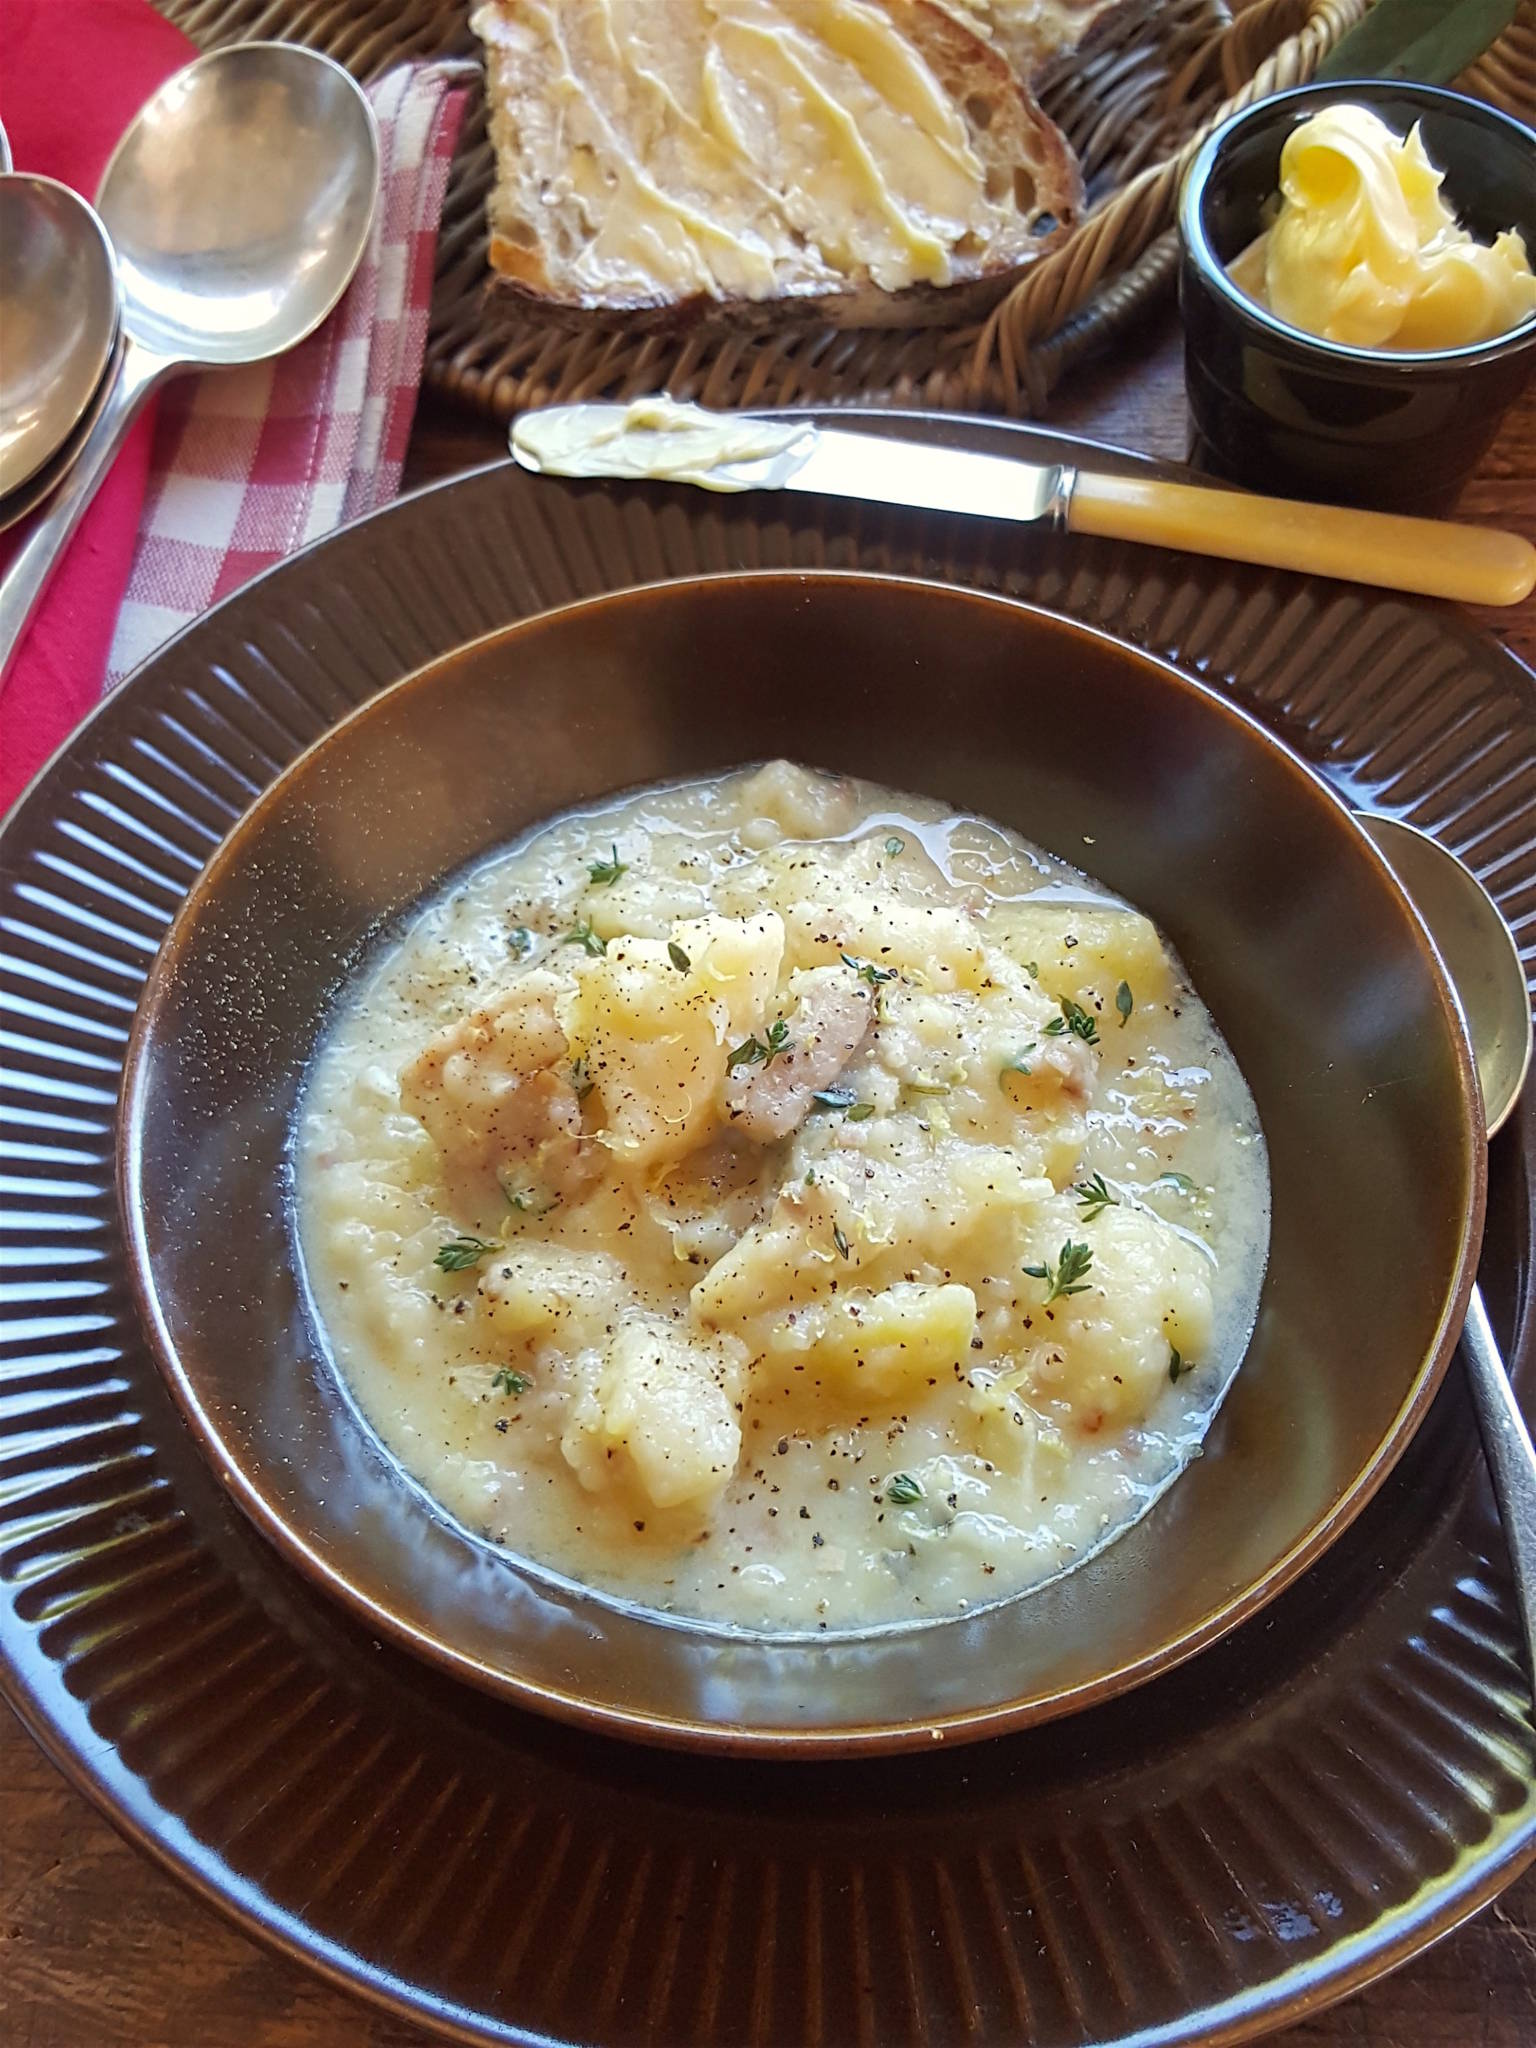 Celeriac & Potato Soup